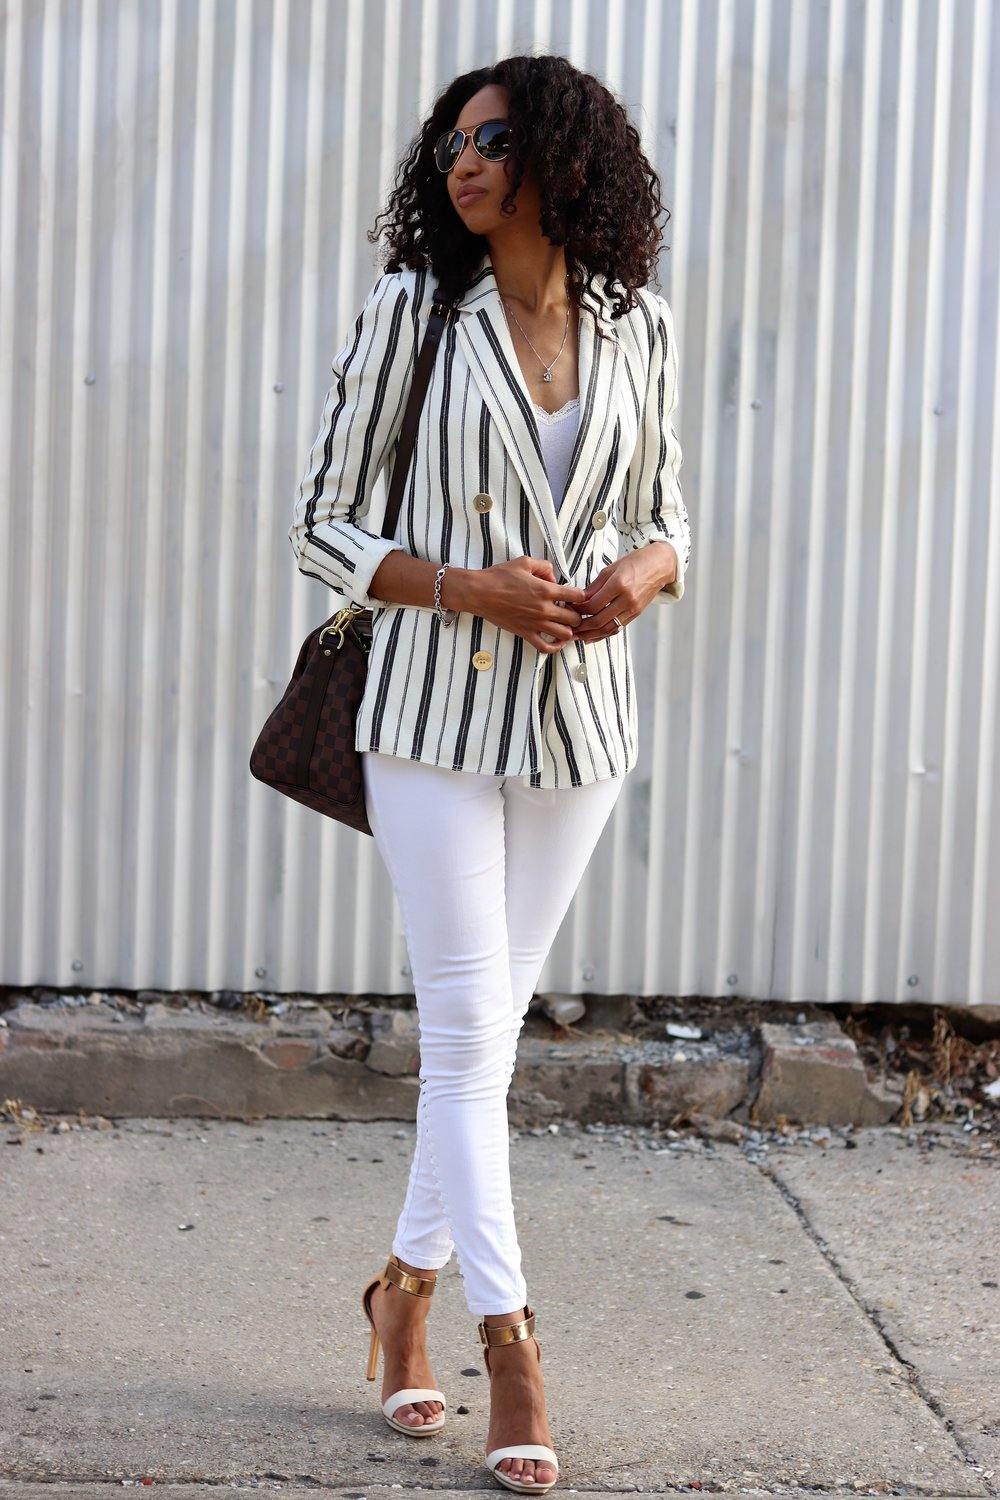 Claudie Pierlot - My relatively new white striped Claudie Pierlot white blazer has quickly become a wardrobe staple. I was first introduced to this brand in Milan and I fell in love with the romantic style. The Parisian fashion house owns two other companies I have quickly become obsessed with Maje and Sandro.